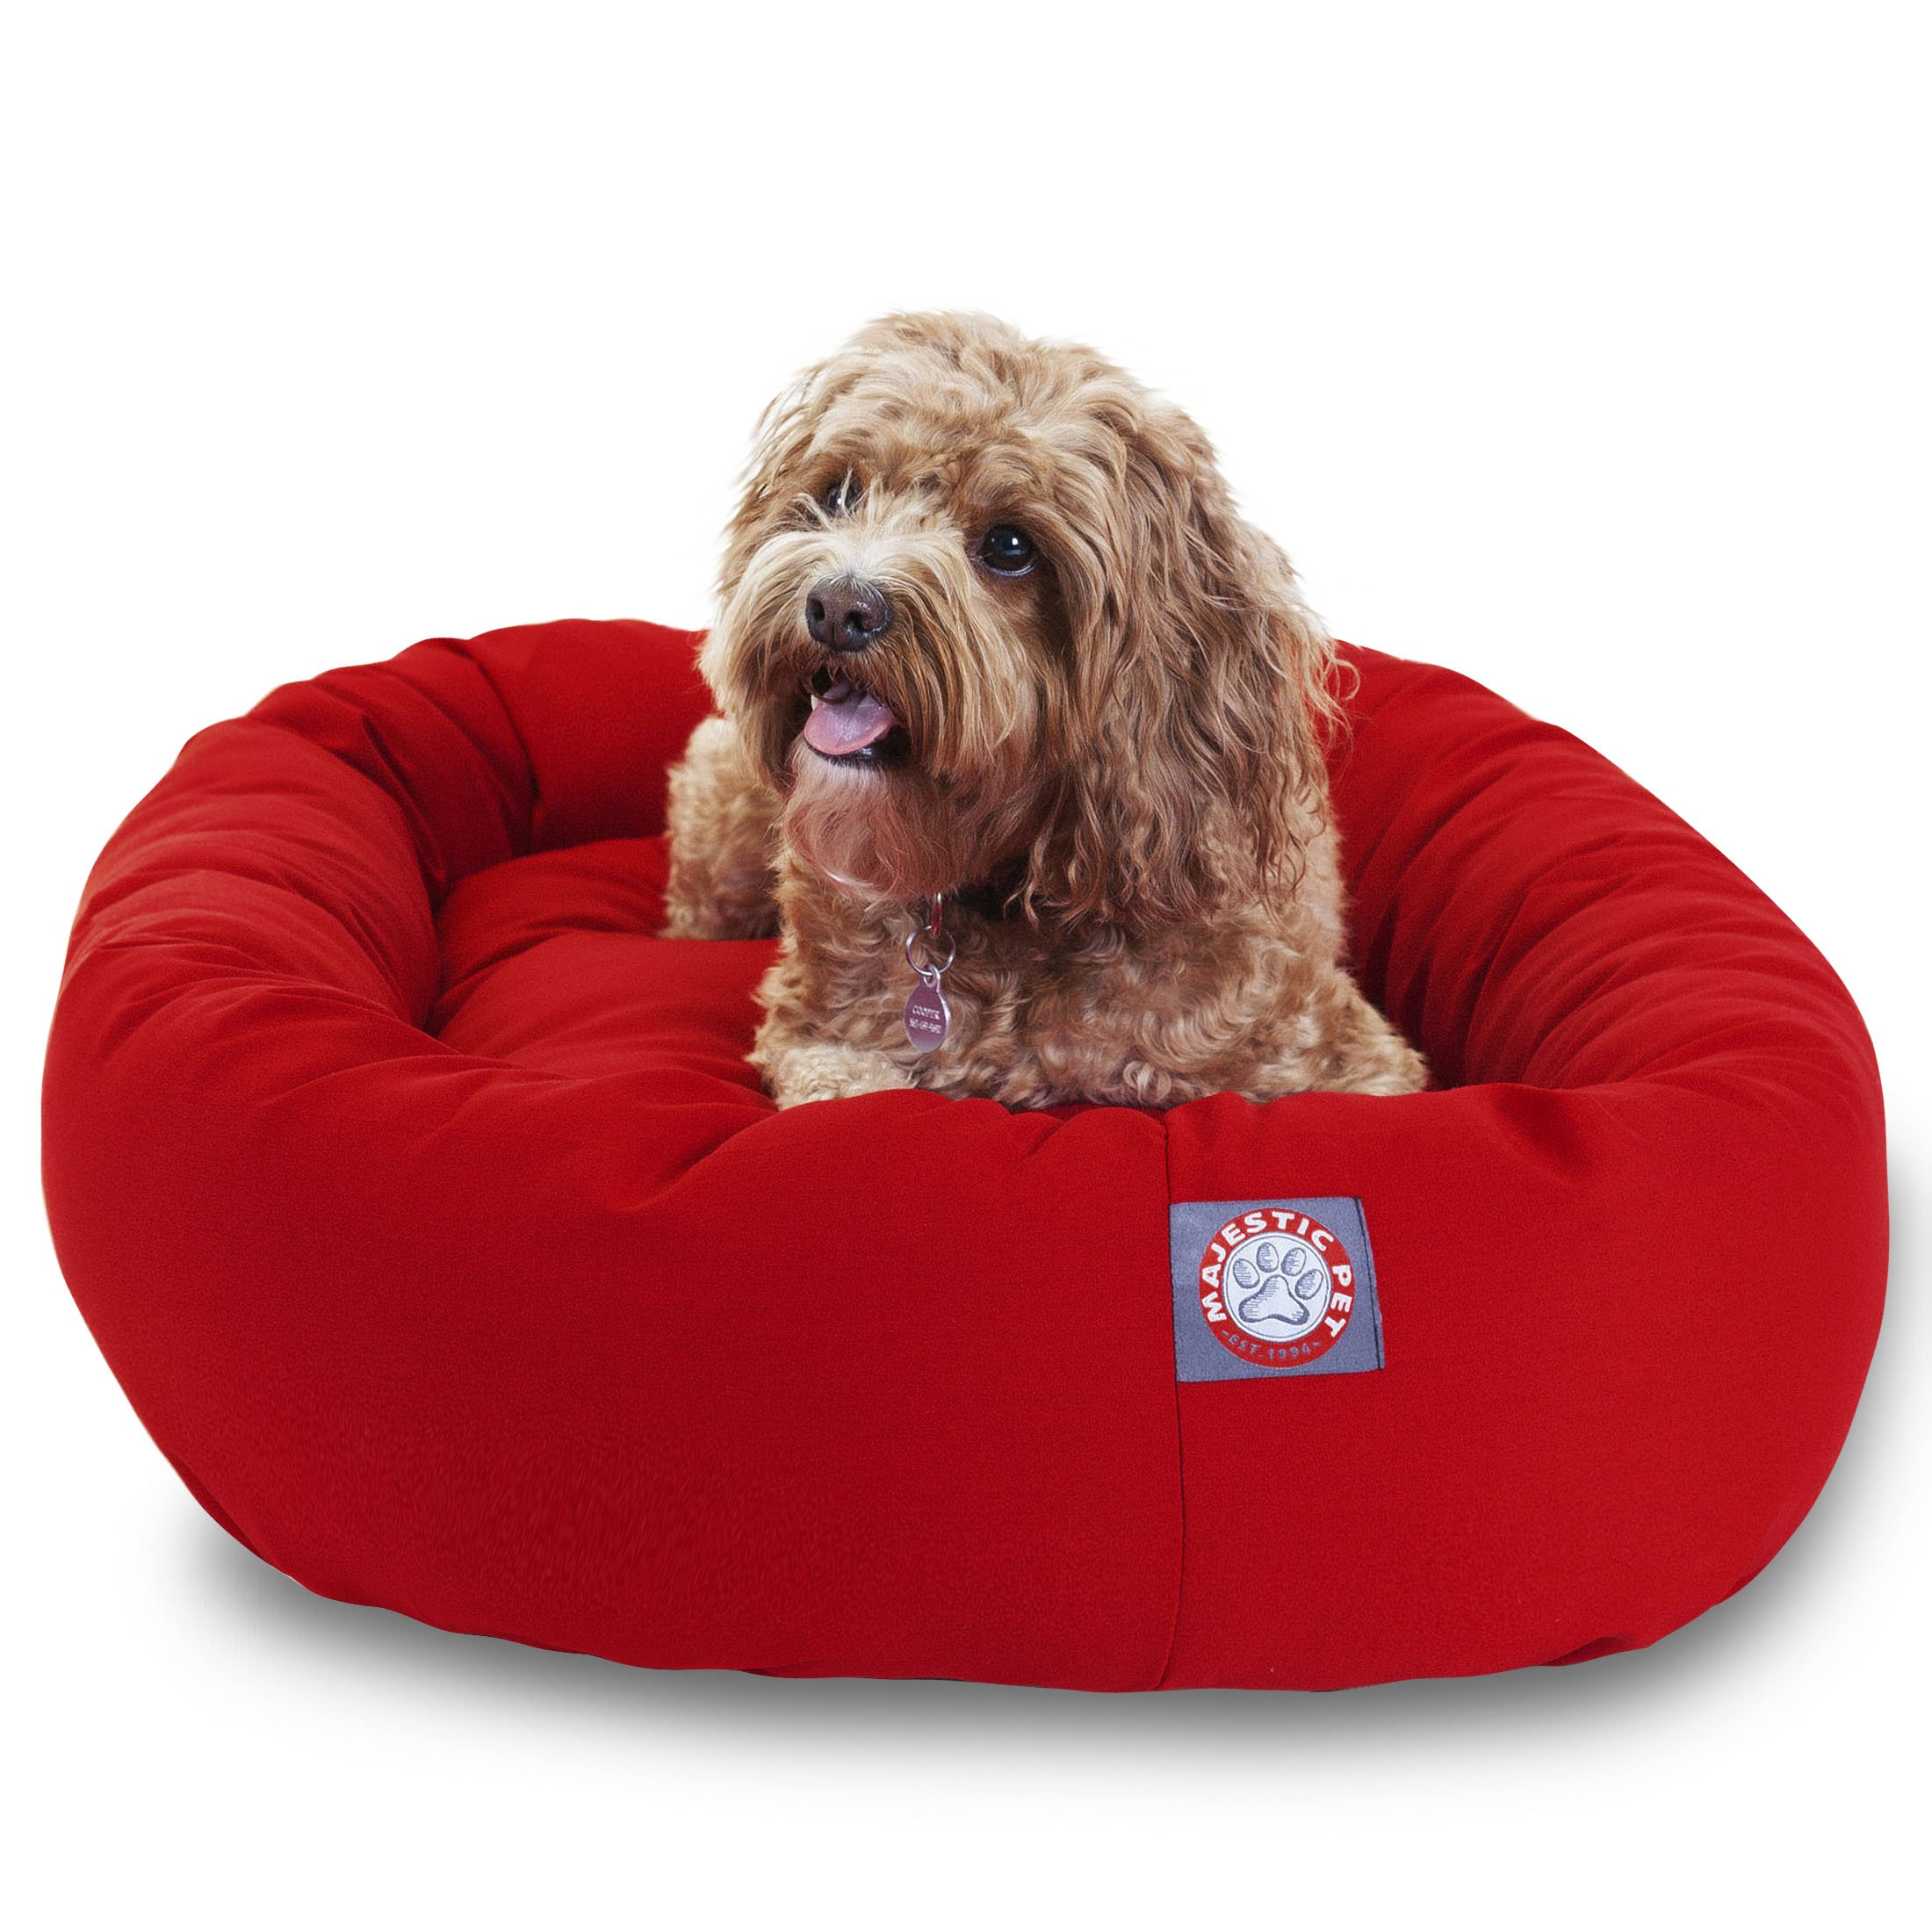 Majestic Pet 32 inch Red Bagel Dog Bed By Products